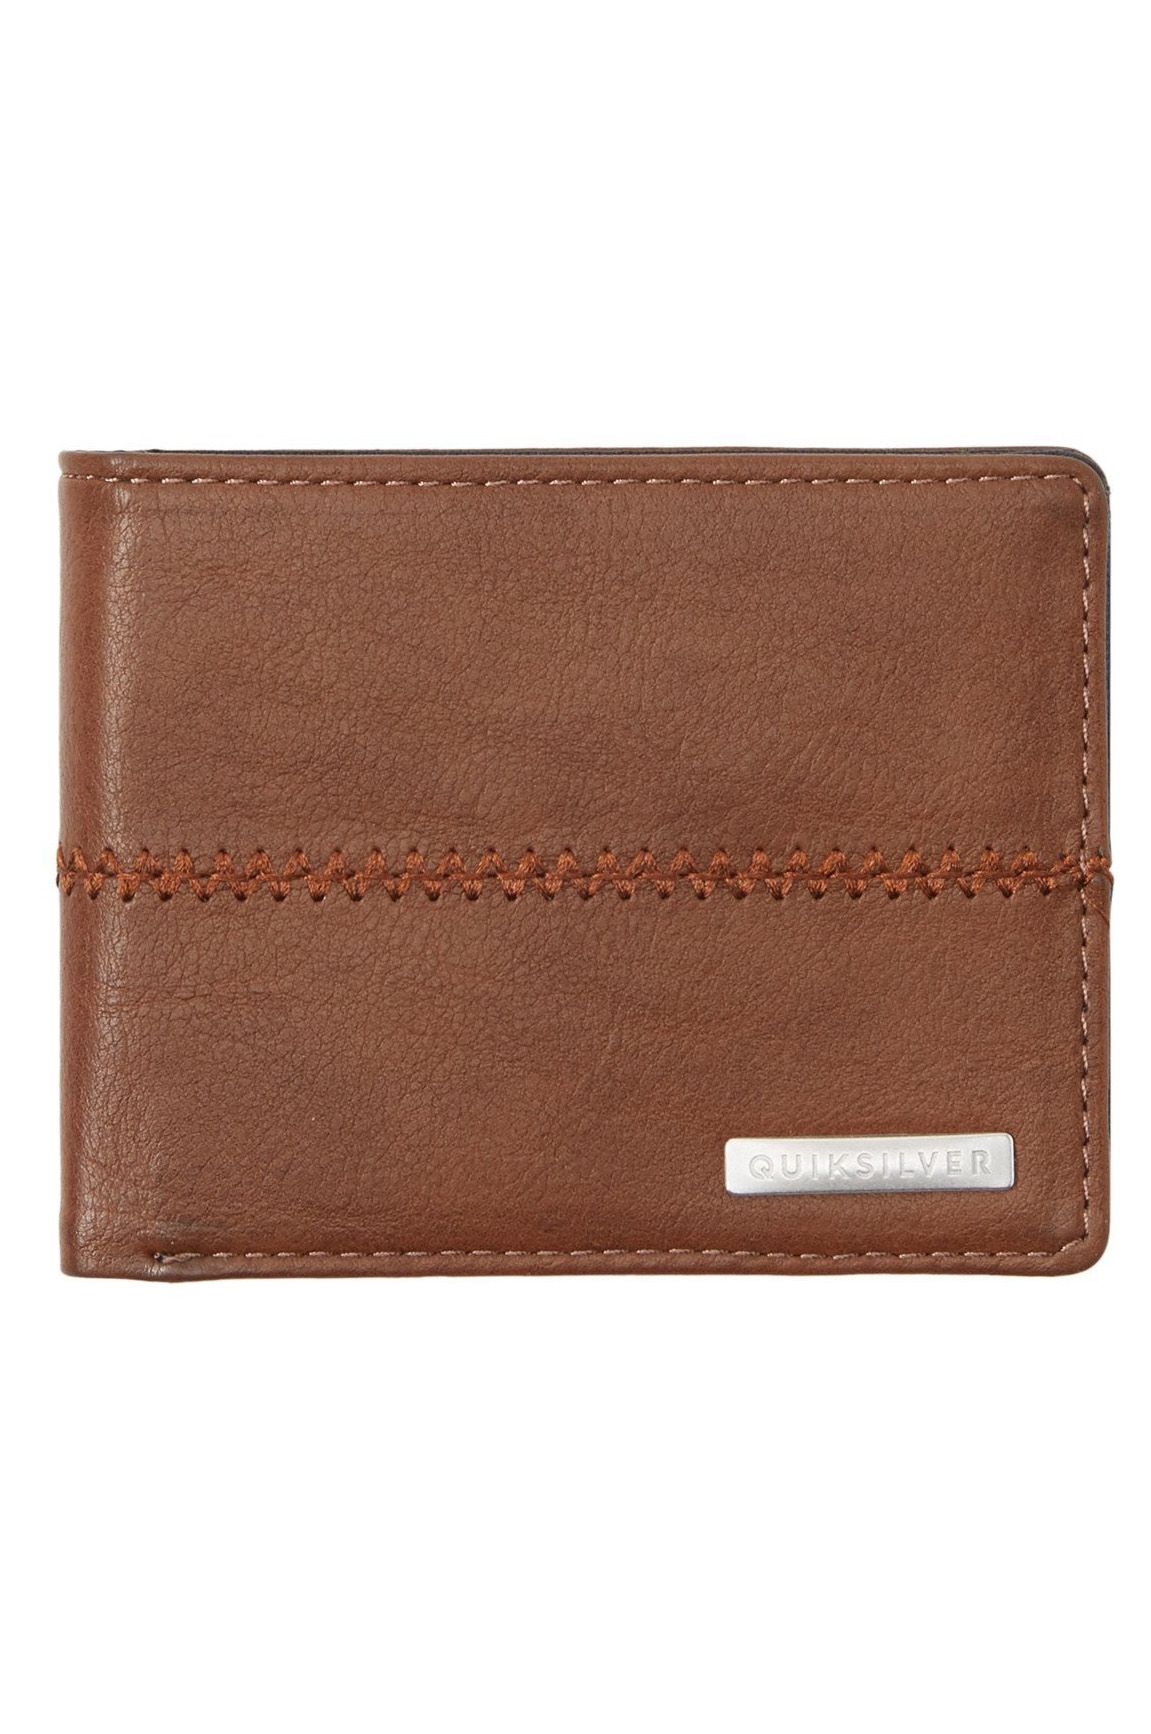 Quiksilver Wallet PU  STITCHY 3 Chocolate Brown